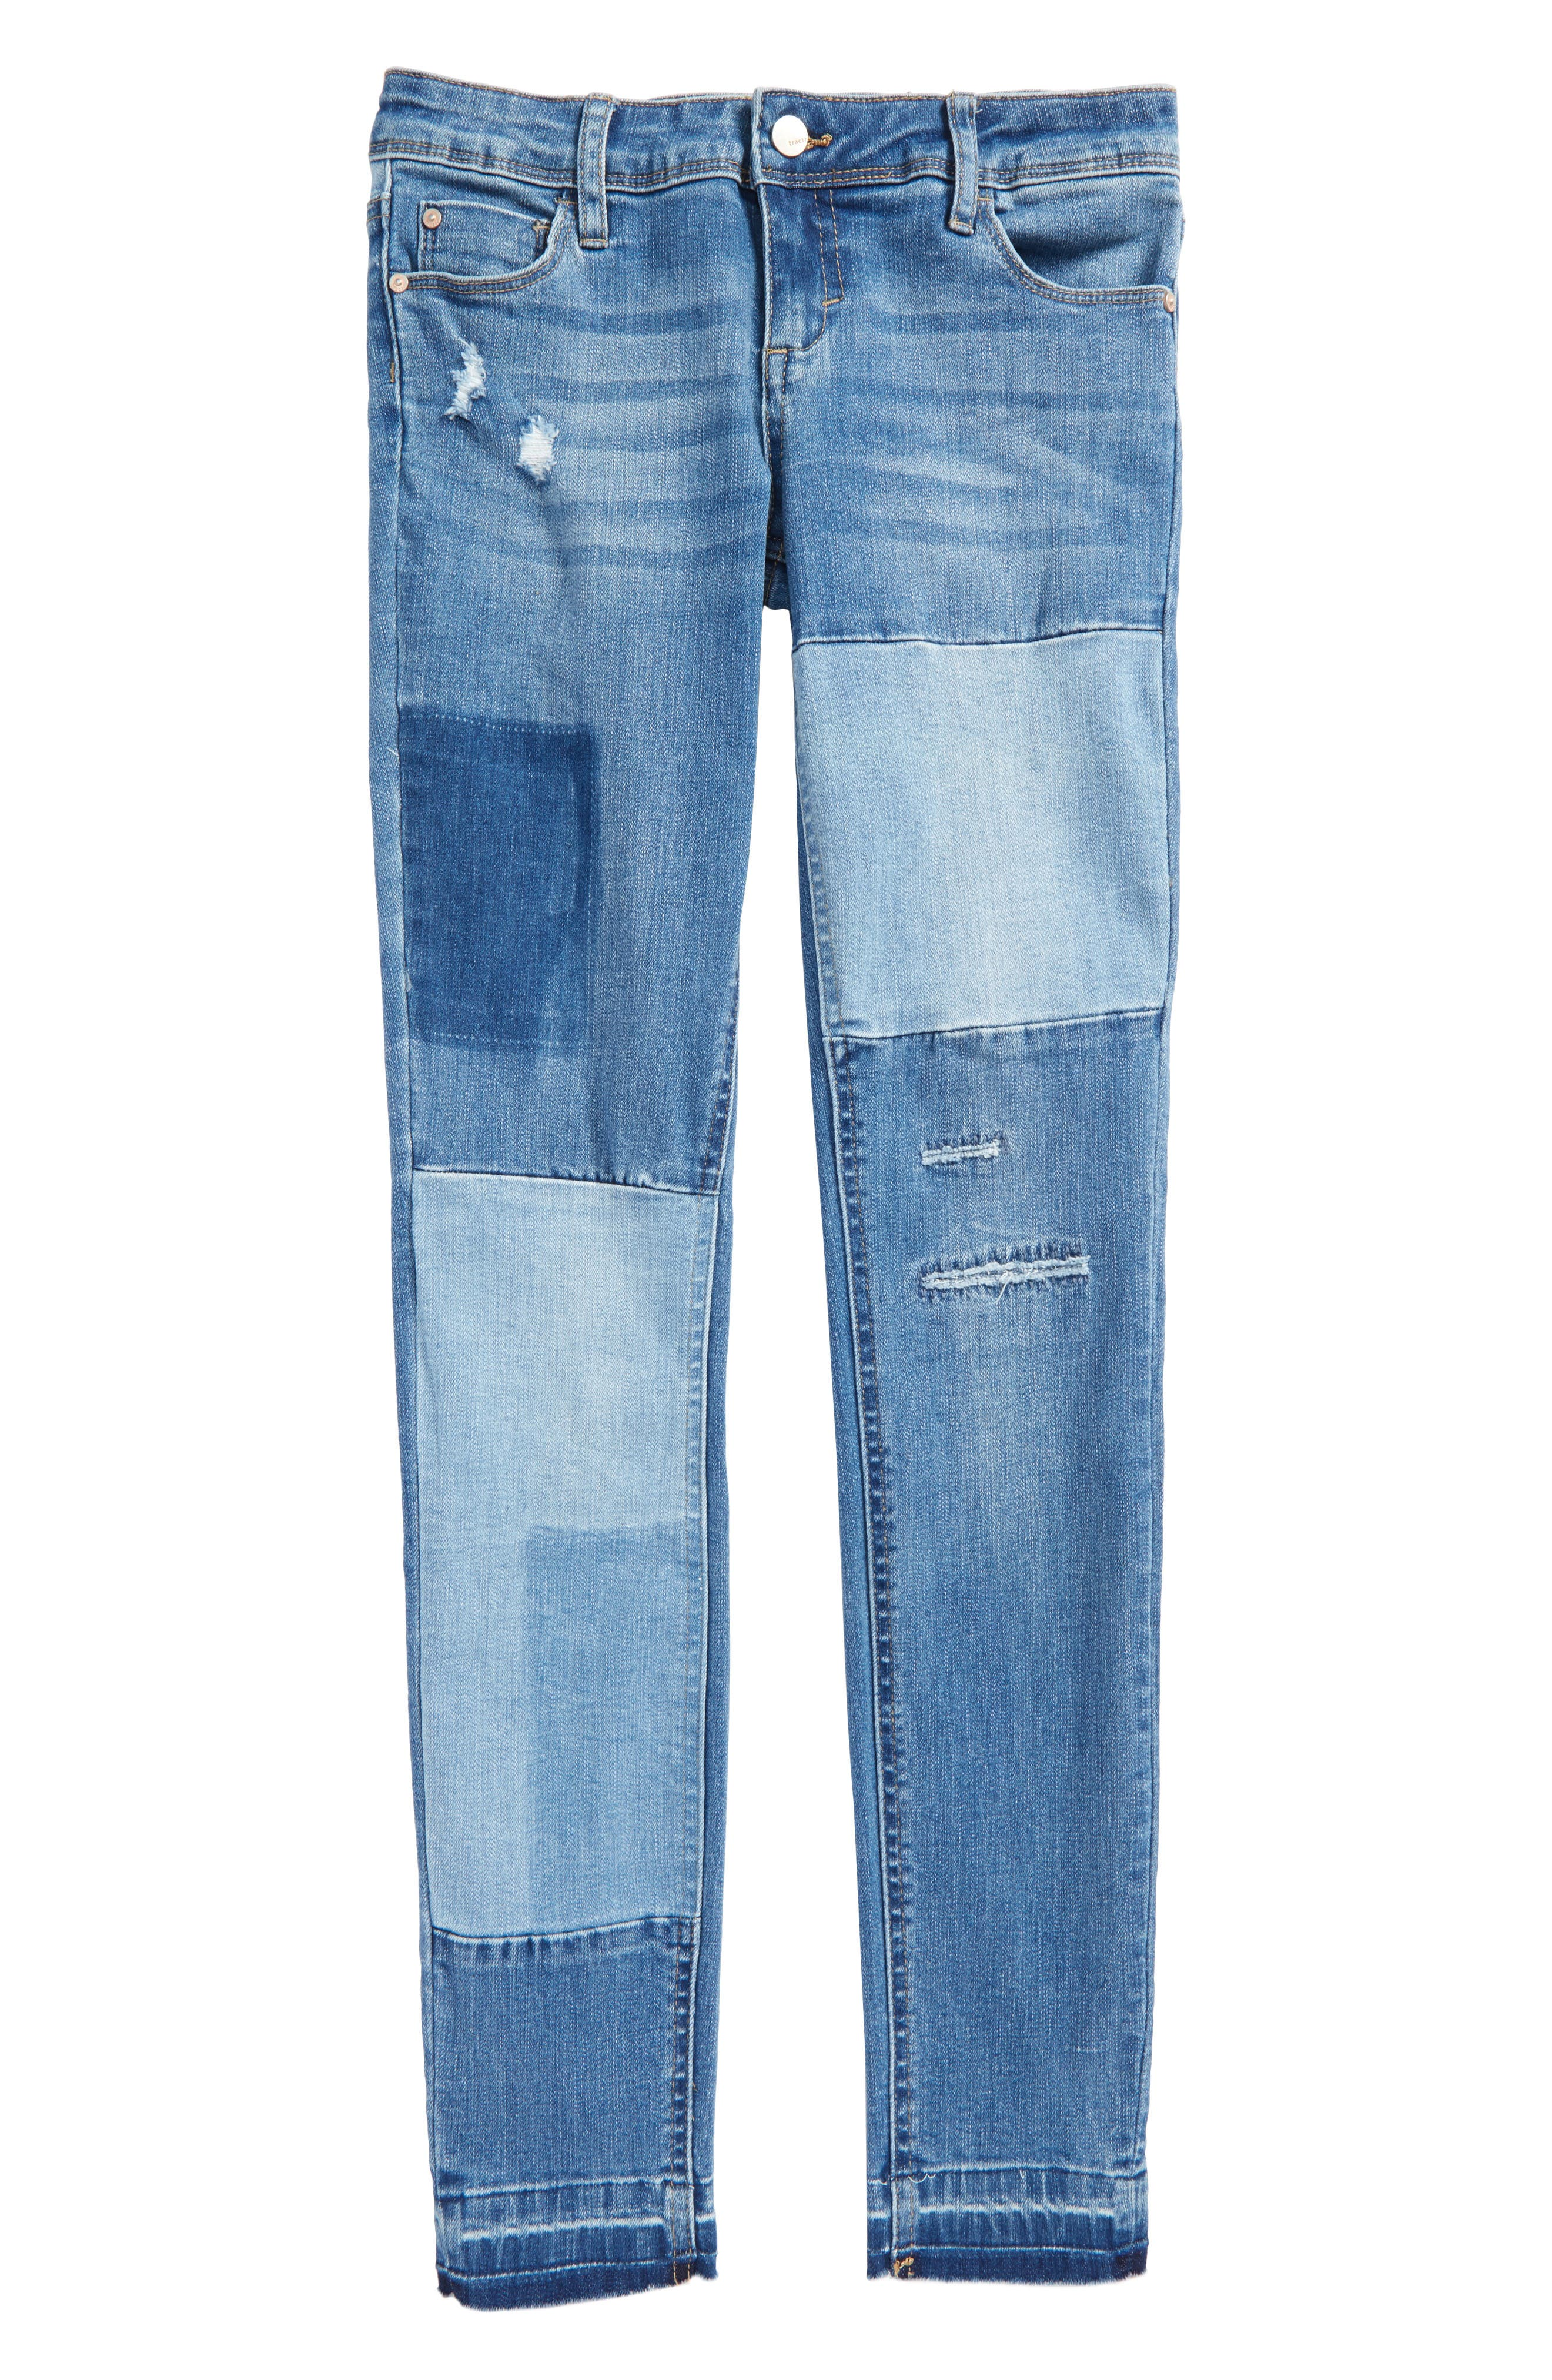 Patchwork Skinny Jeans,                         Main,                         color, 407